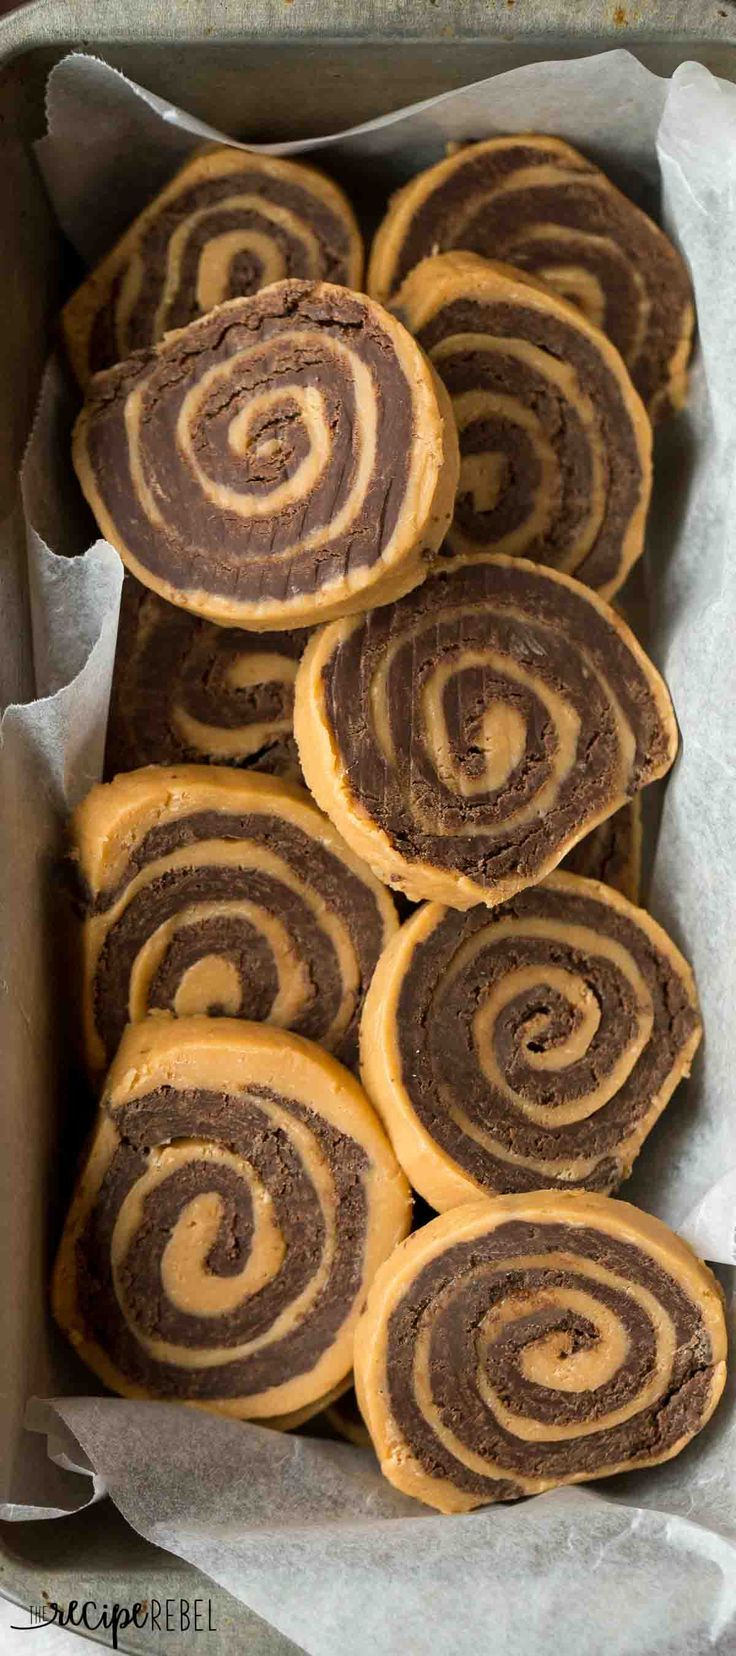 These no bake Chocolate Peanut Butter Pinwheels are easy with only 3 ingredients! They are made up of two layers of fudge, rolled together into a pinwheel shape!